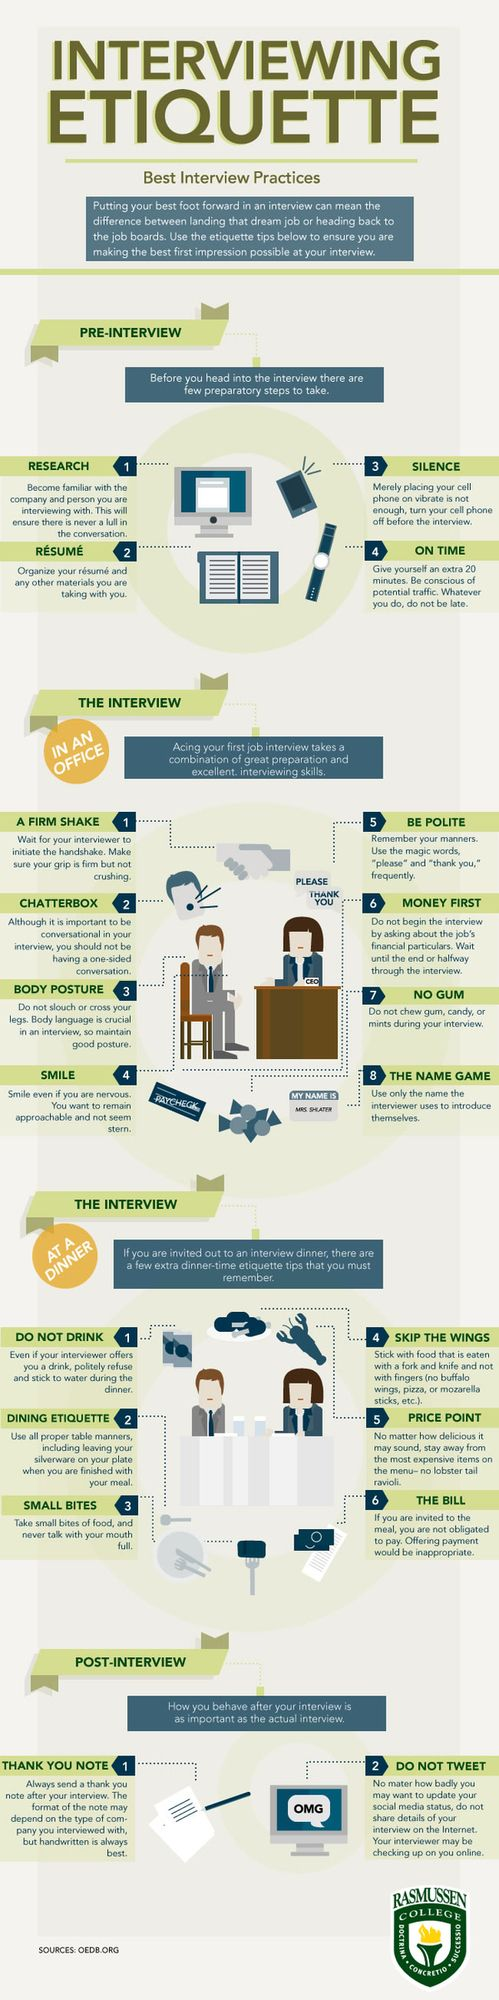 Interviewing Etiquette (Infographic)